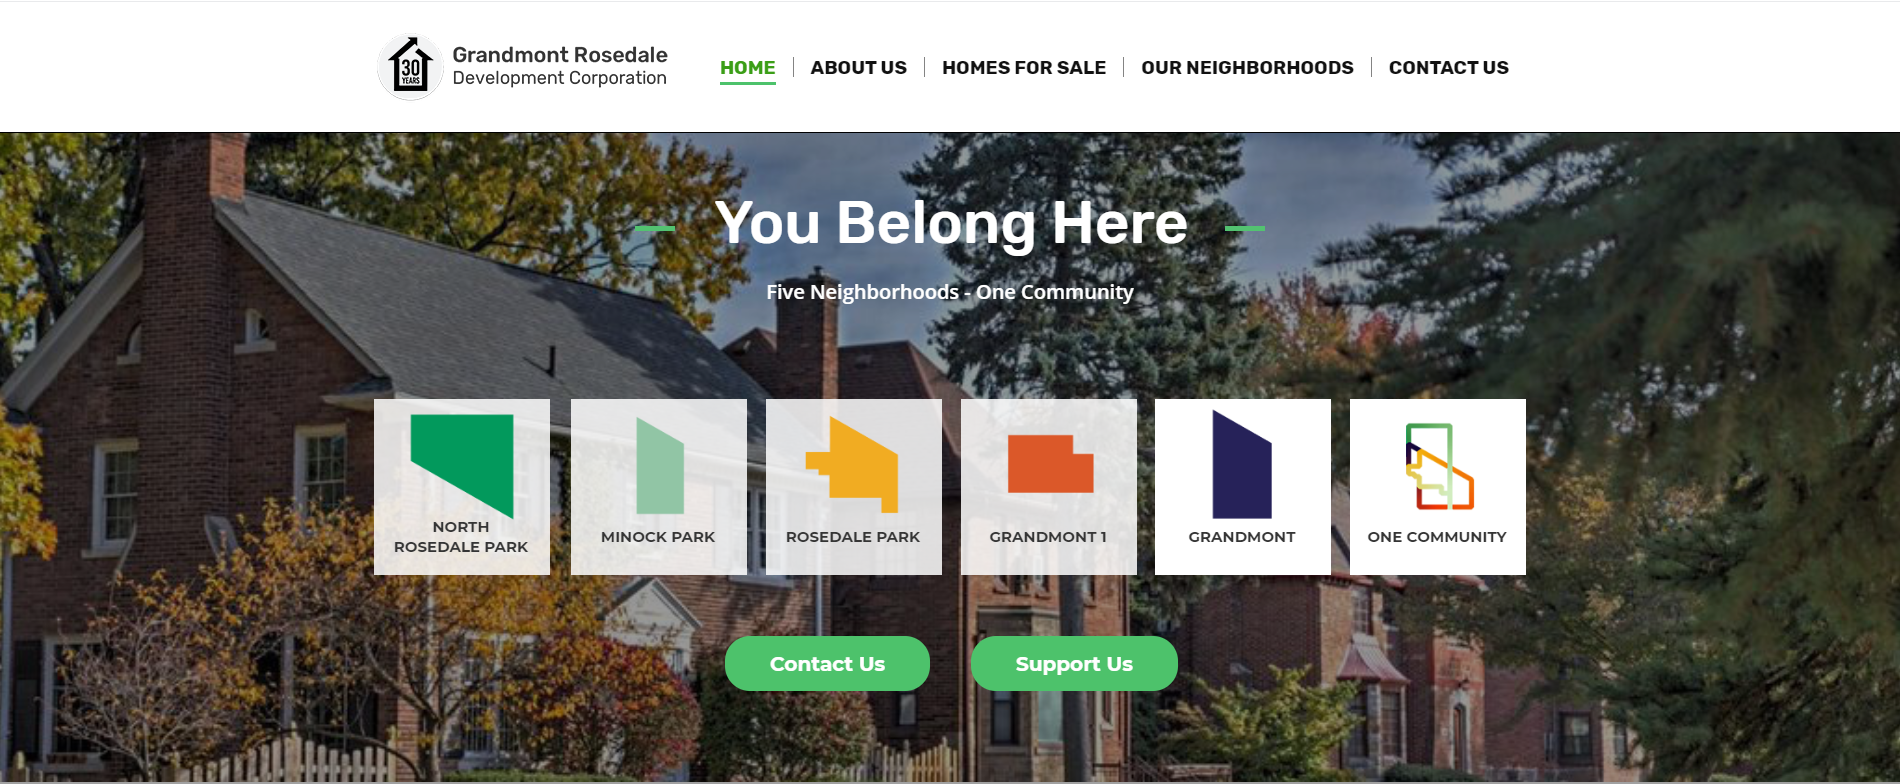 Image of Grandmont-Rosedale Development Corporation landing page